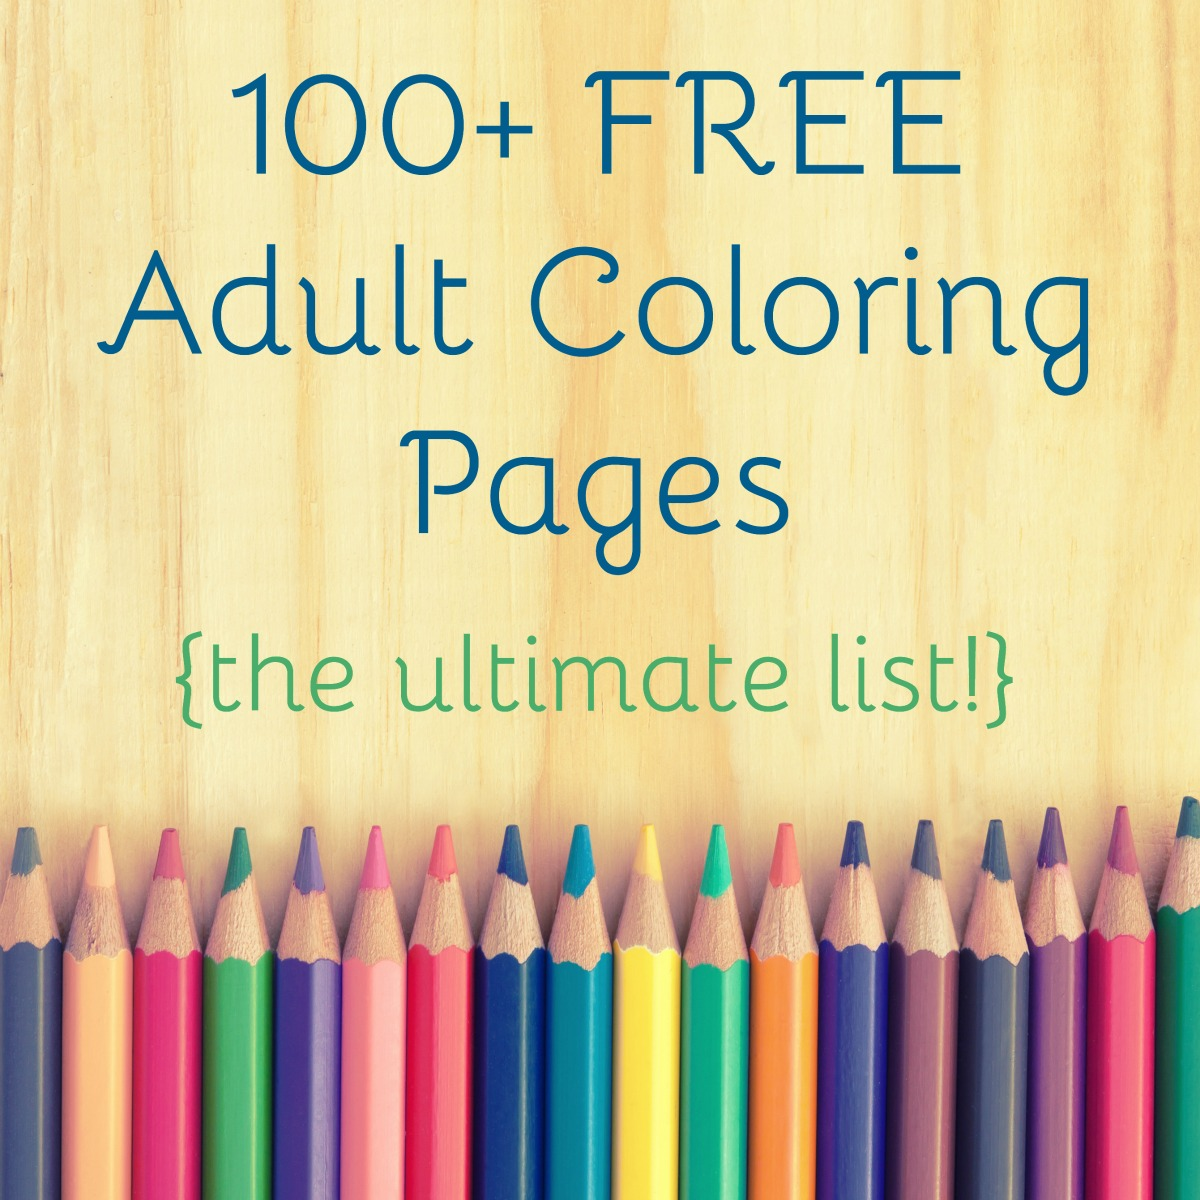 25 FREE Adult Coloring Pages - The Country Chic Cottage